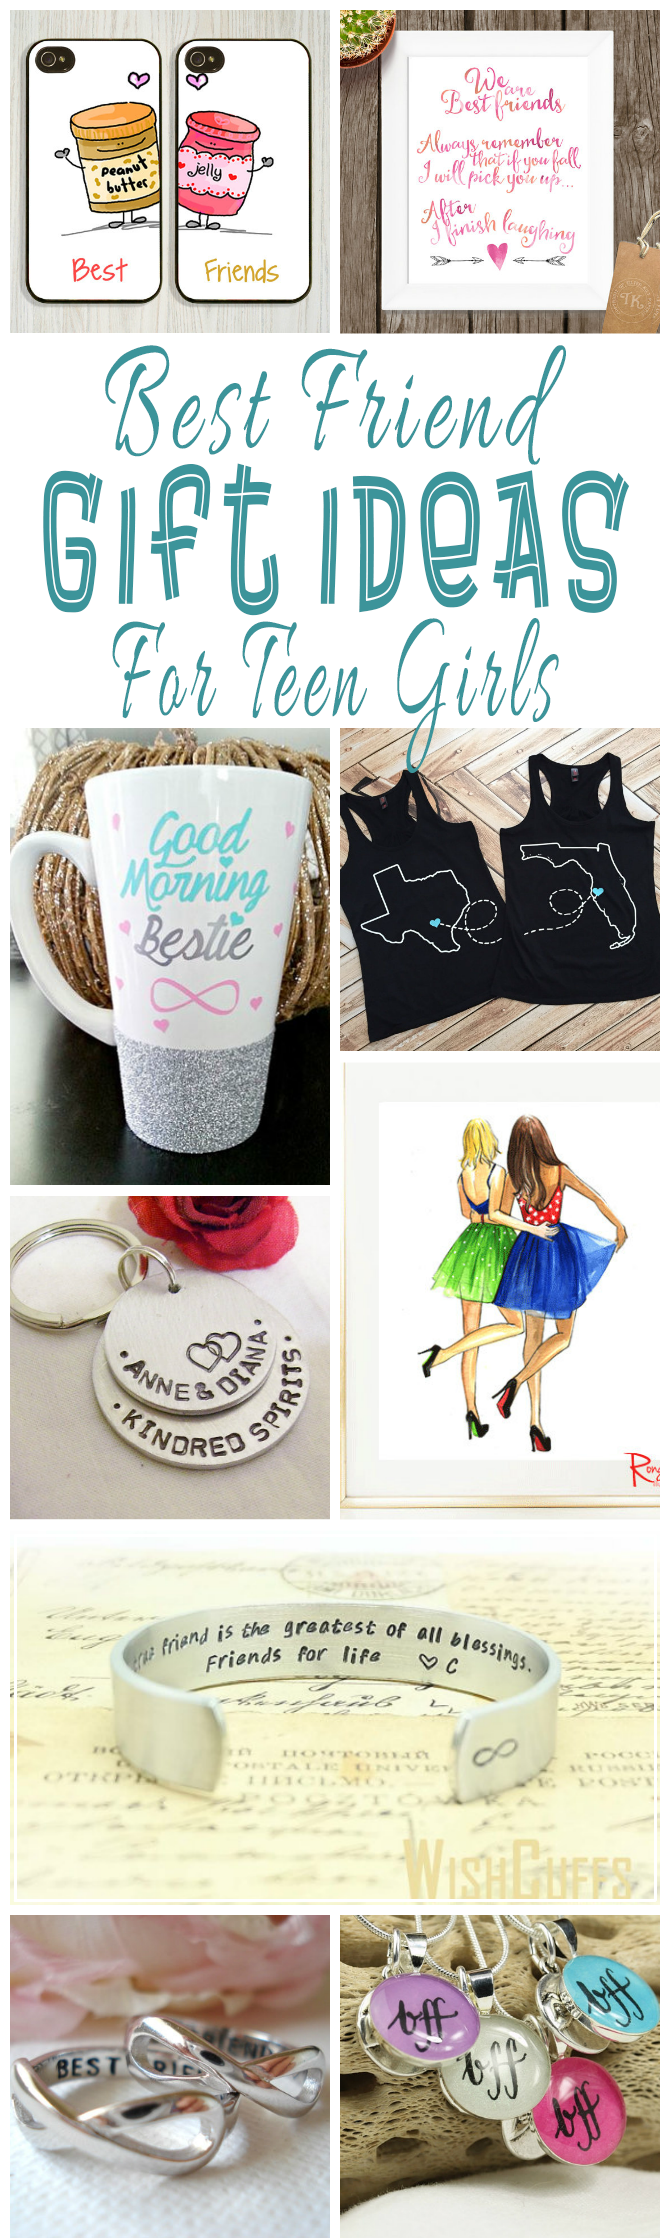 A Collection Of Unique Hand Crafted Or Designed Best Friend Gift Ideas For Teen Girls